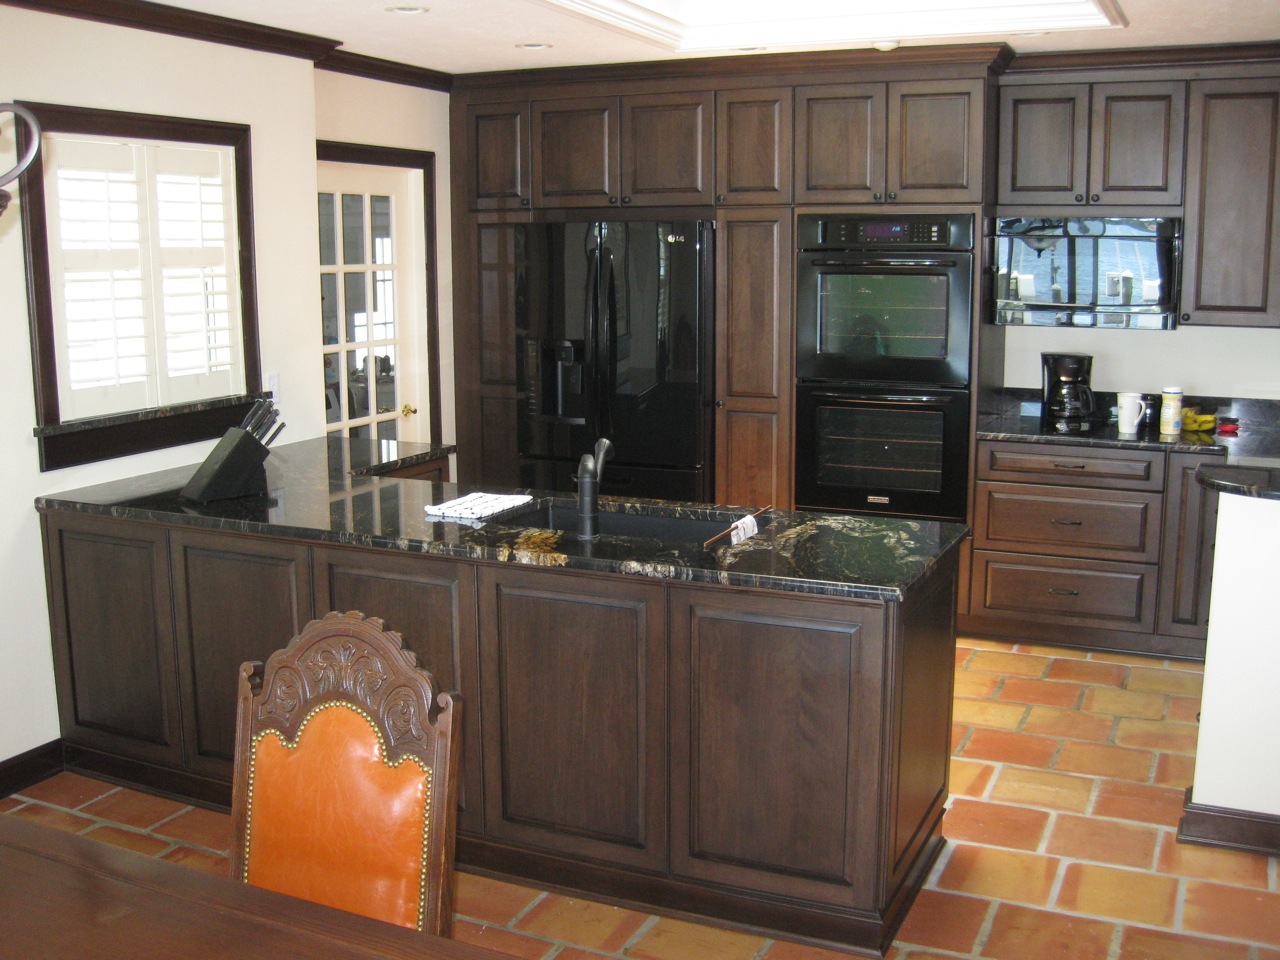 I handled this kitchen remodel project for a private home owner in Sarasota. I designed the new kitchen to create an open feeling that ties into the central spaces of the house.Cabico offers unlimited design options with hundreds of door styles, numerous species of wood, and an almost unlimited palette of finishes, paints and glazes. This project features a 5-step finishing process with a Walnut stain on Red Birch doors with an Heirloom Black glaze.